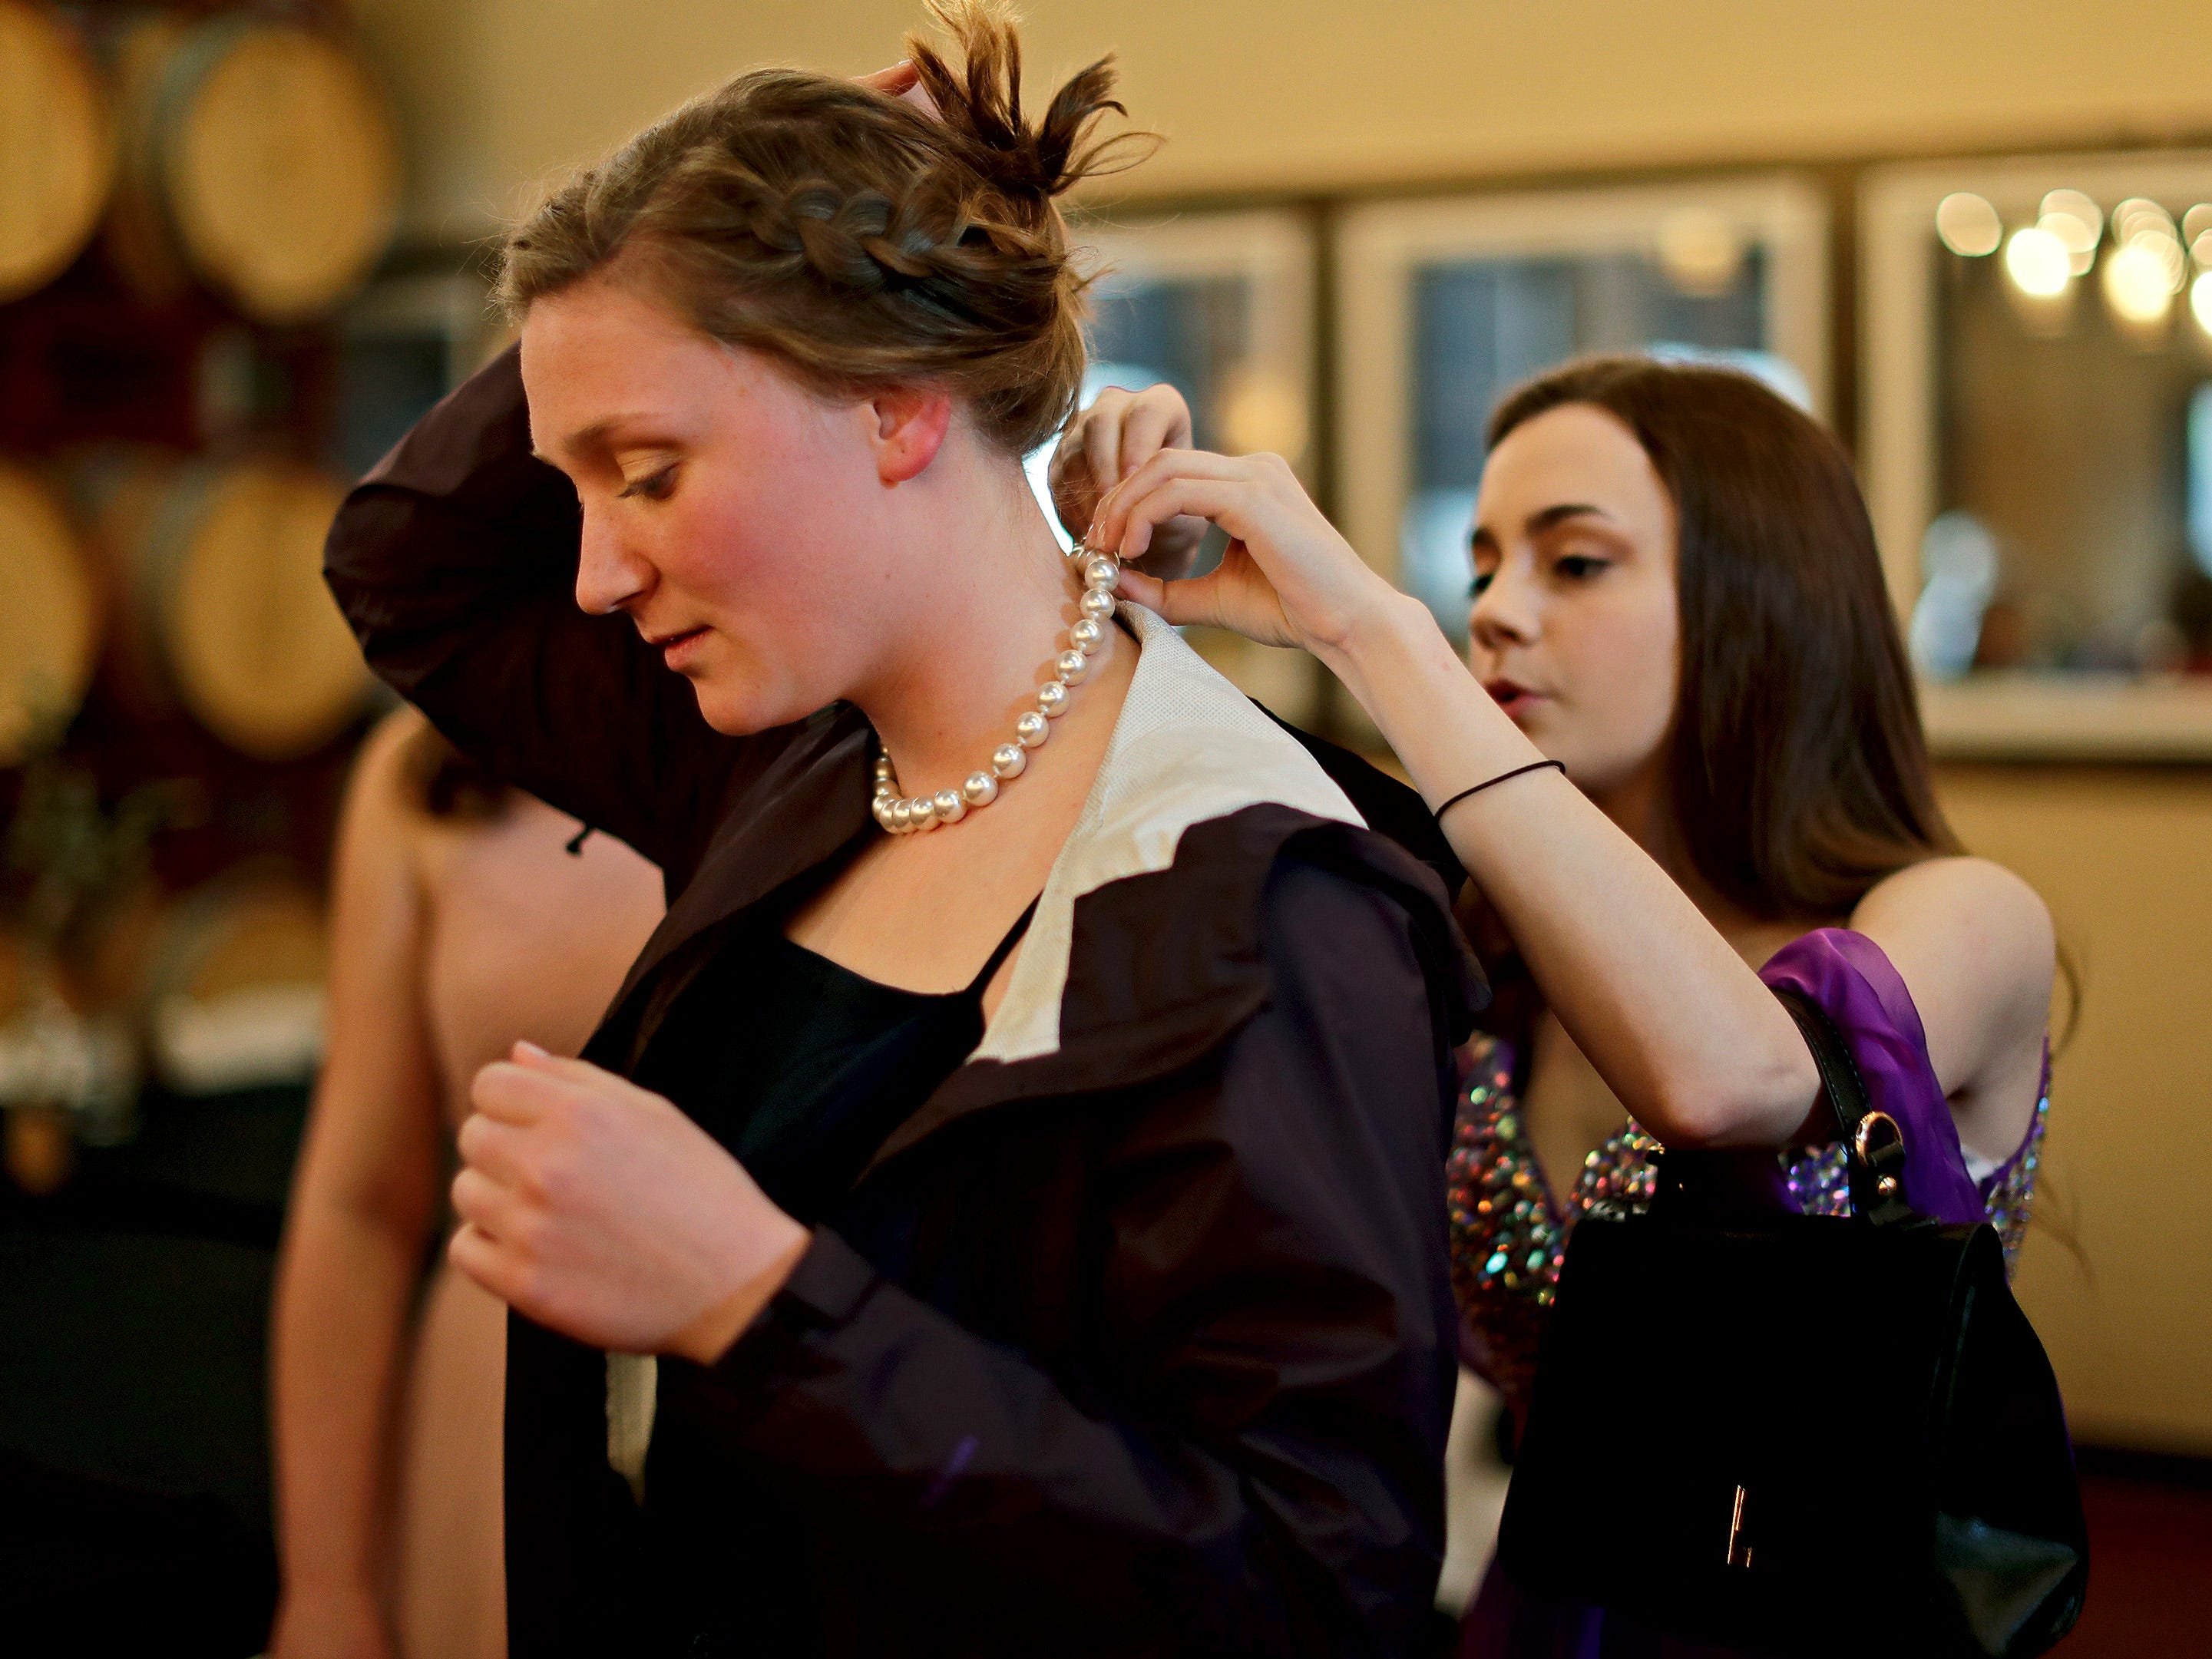 Annie Cornette, right, attaches a necklace on Ellie Steenwyk before the Sheboygan Christian Junior-Senior Banquet, Friday, May 3, 2019, at The Blind Horse, in Kohler, Wis.